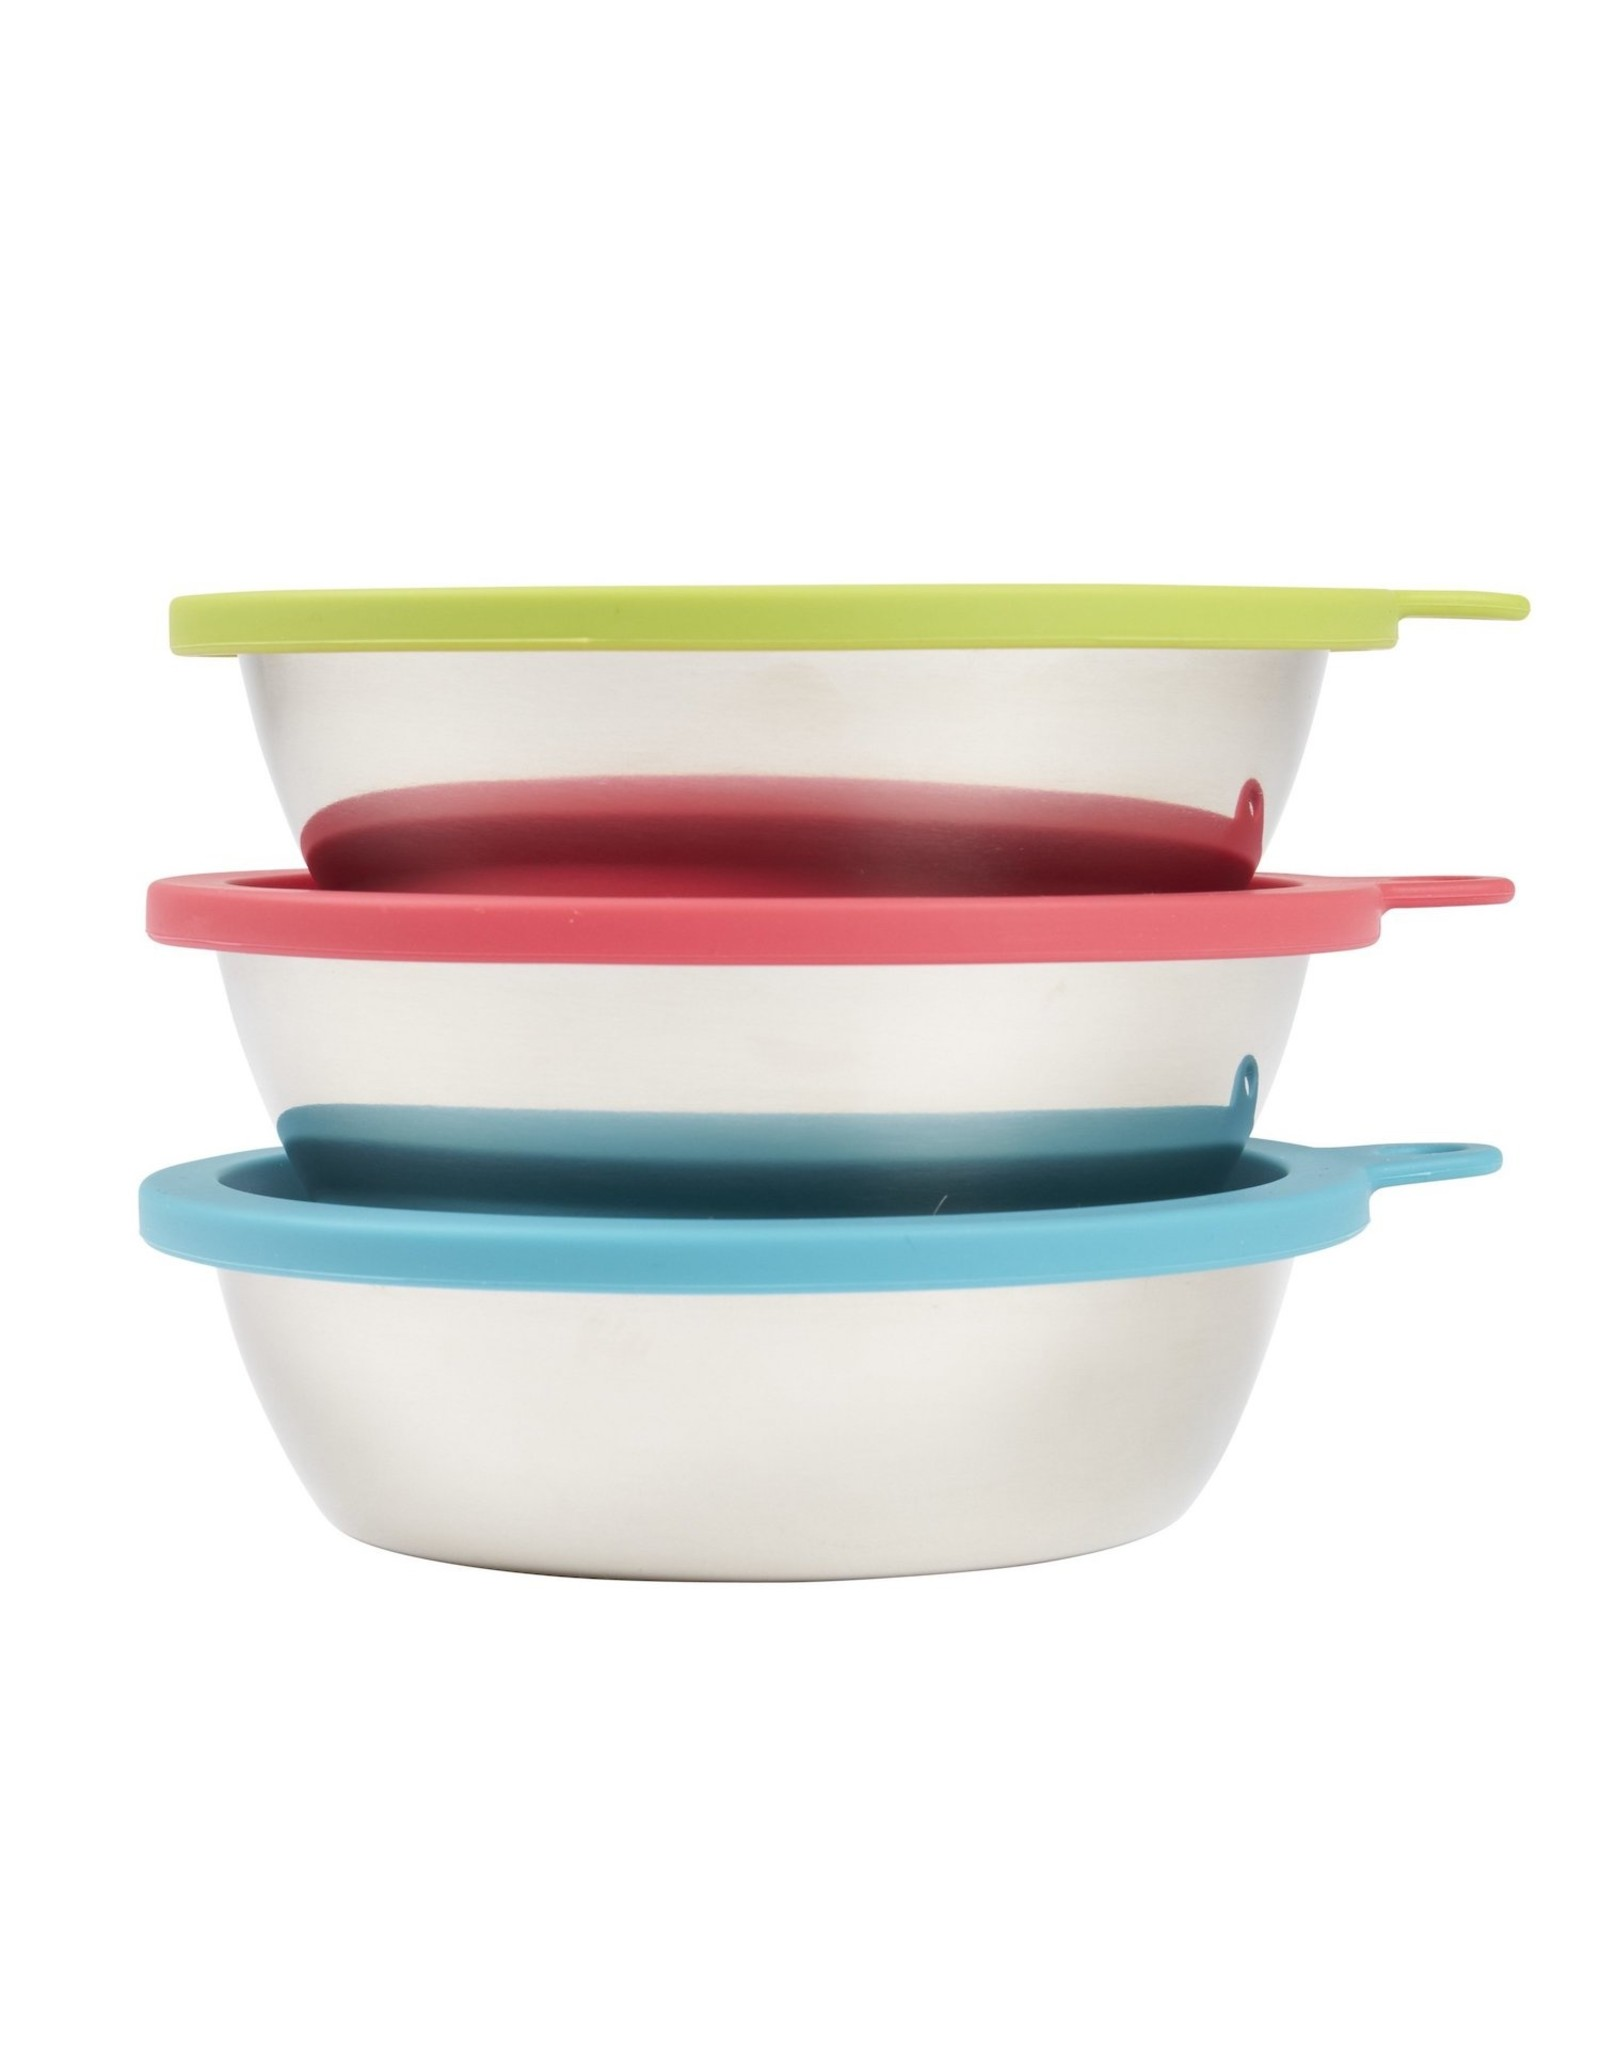 Messy Mutts MESSY MUTTS STAINLESS STEEL BOWL & LID 6-PIECE BOX SET